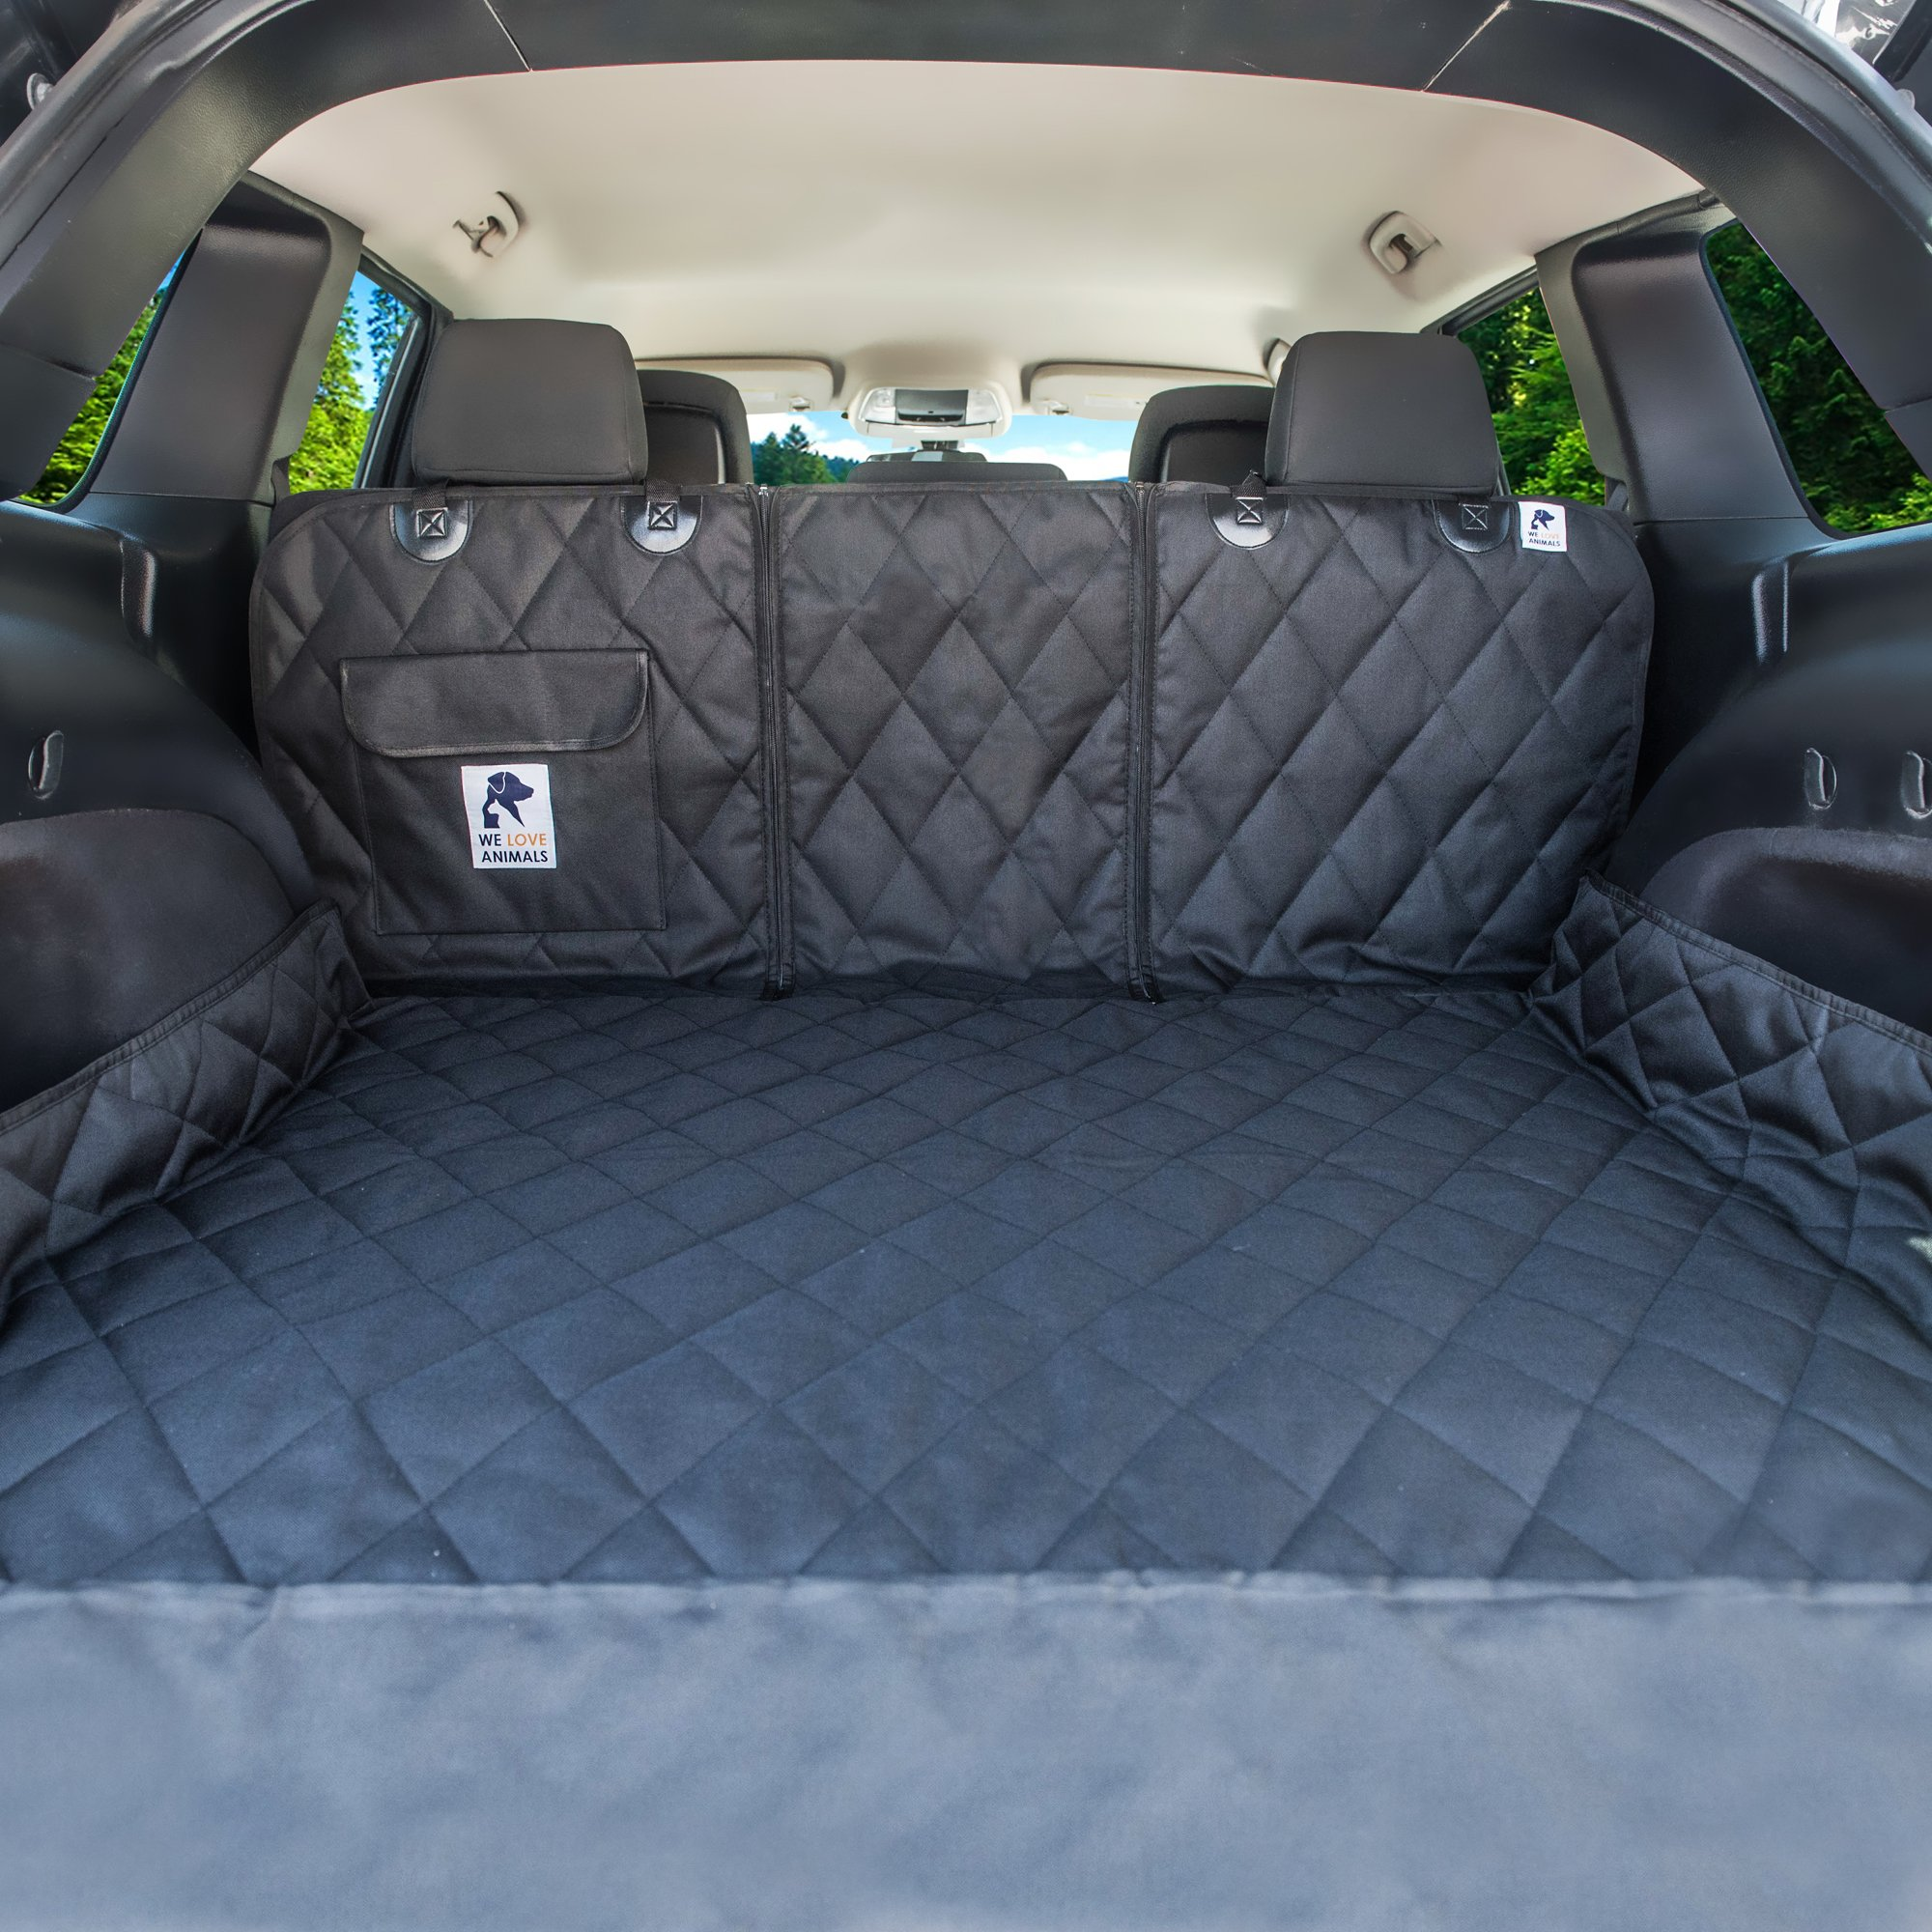 Dog Cargo Liner for SUV, Van, Truck & Jeep - Waterproof, Machine Washable, Nonslip Pet Seat Cover with Bumper Flap will keep your vehicle as clean as ever - XL, Universal Fit - BONUS Carry Bag by WE LOVE ANIMALS (Image #2)